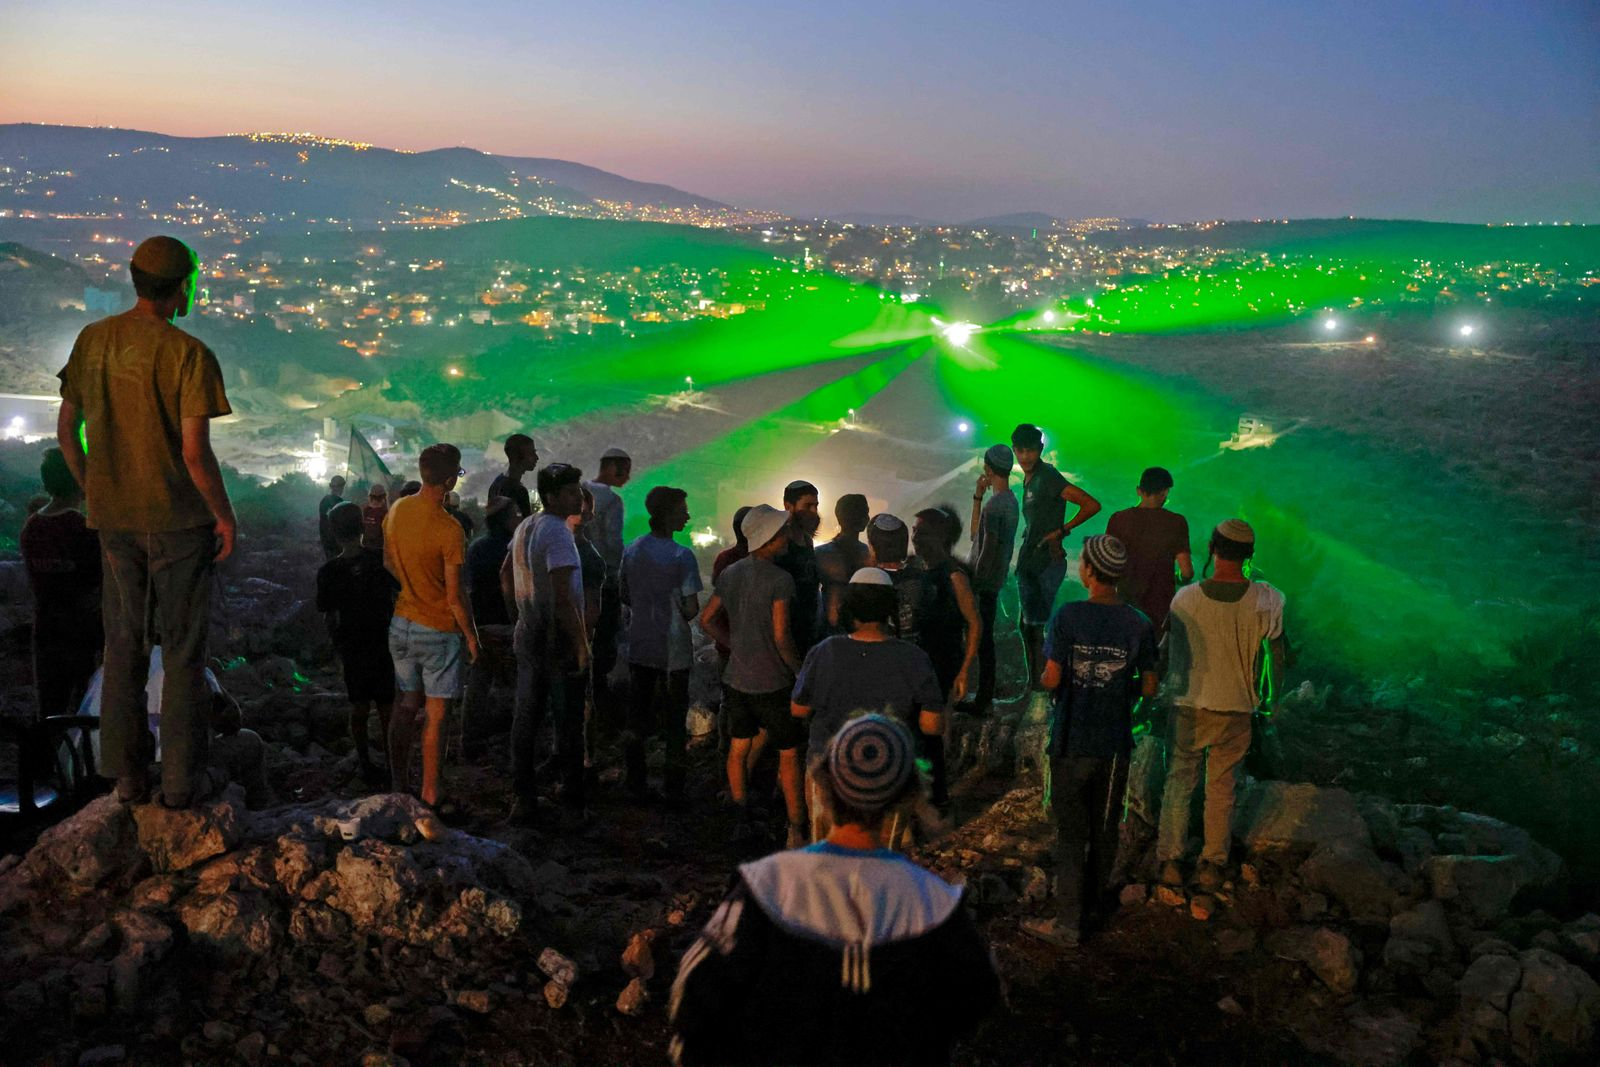 TOPSHOT-PALESTINIAN-ISRAEL-CONFLICT-SETTLEMENTS